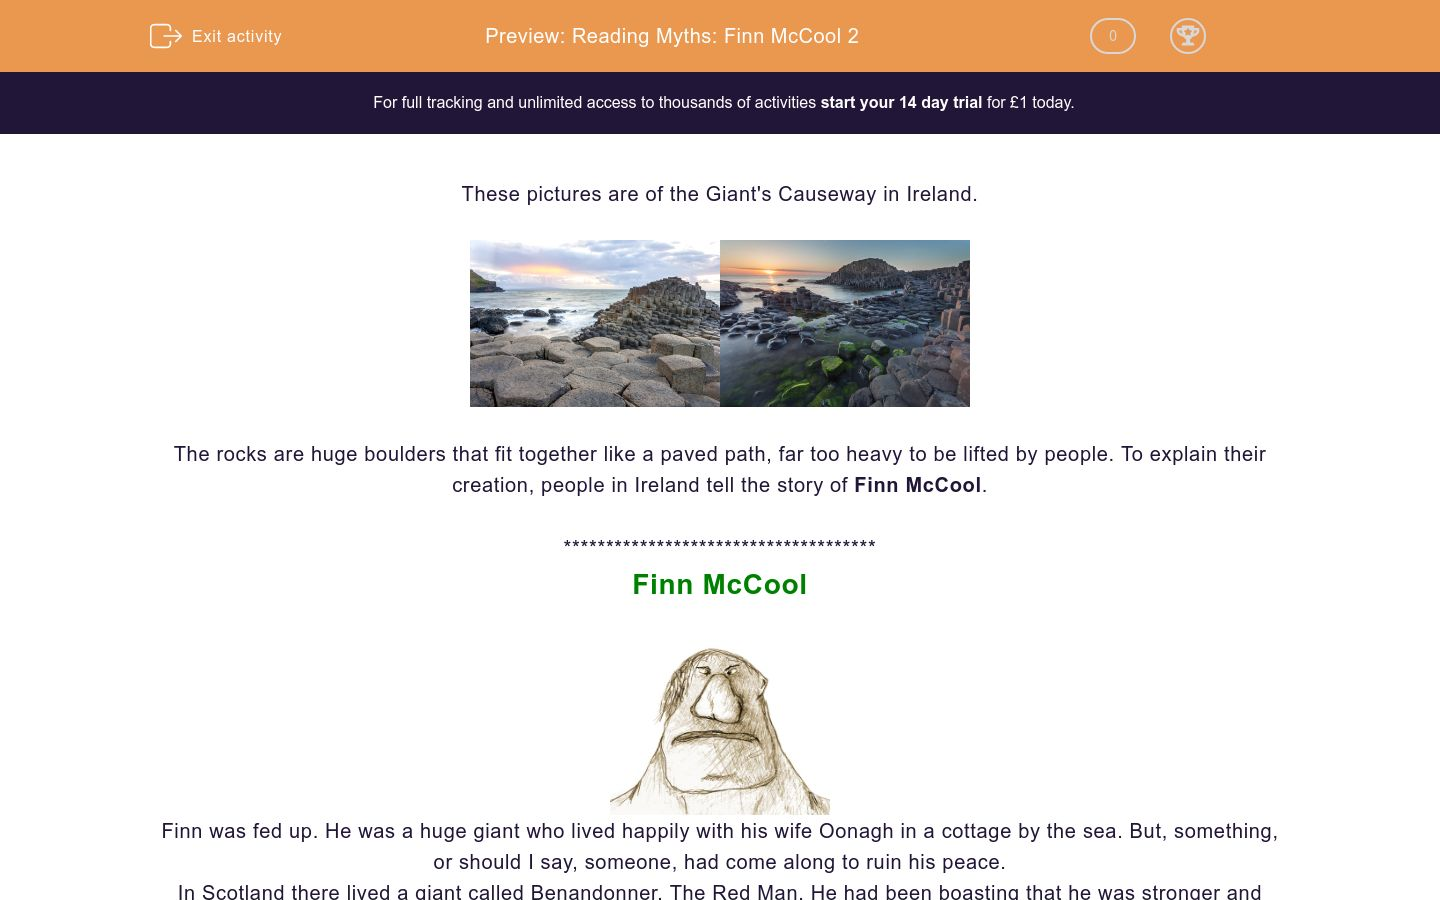 'Reading Myths: Finn McCool 2' worksheet